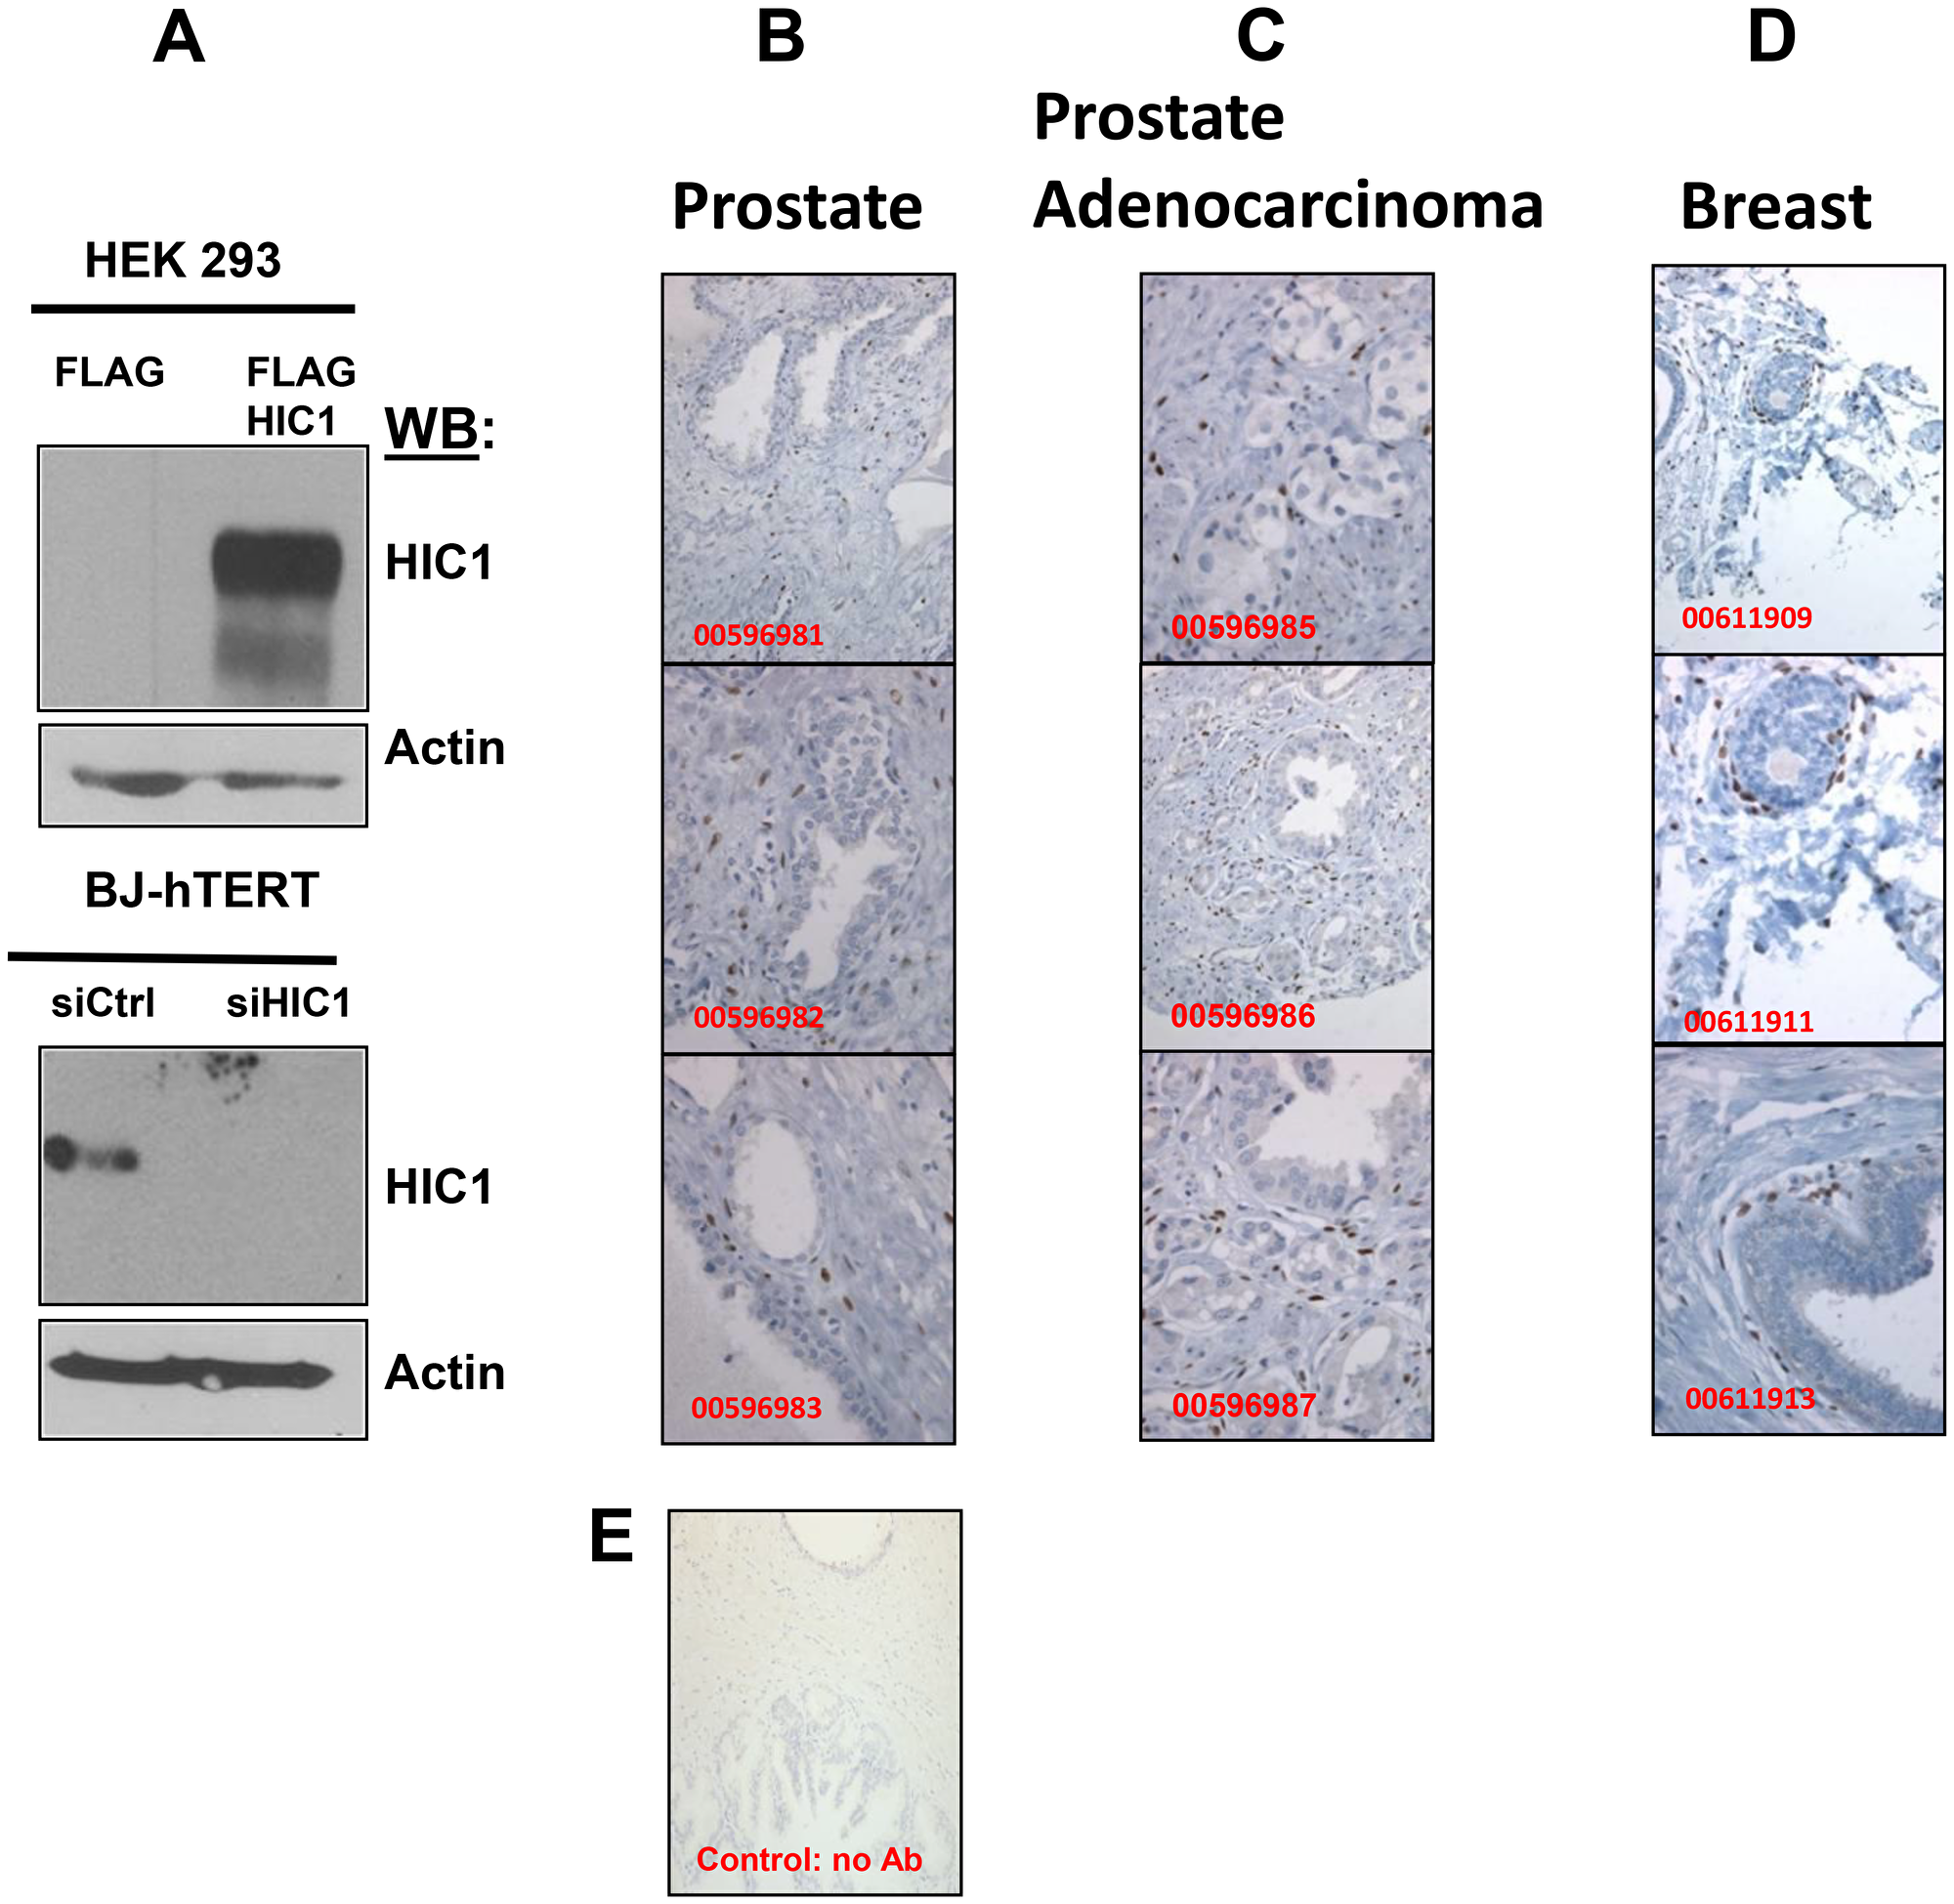 Immunohistochemical analyses of HIC1 expression in normal human prostate and breast tissues as well as in human PCa tissues.